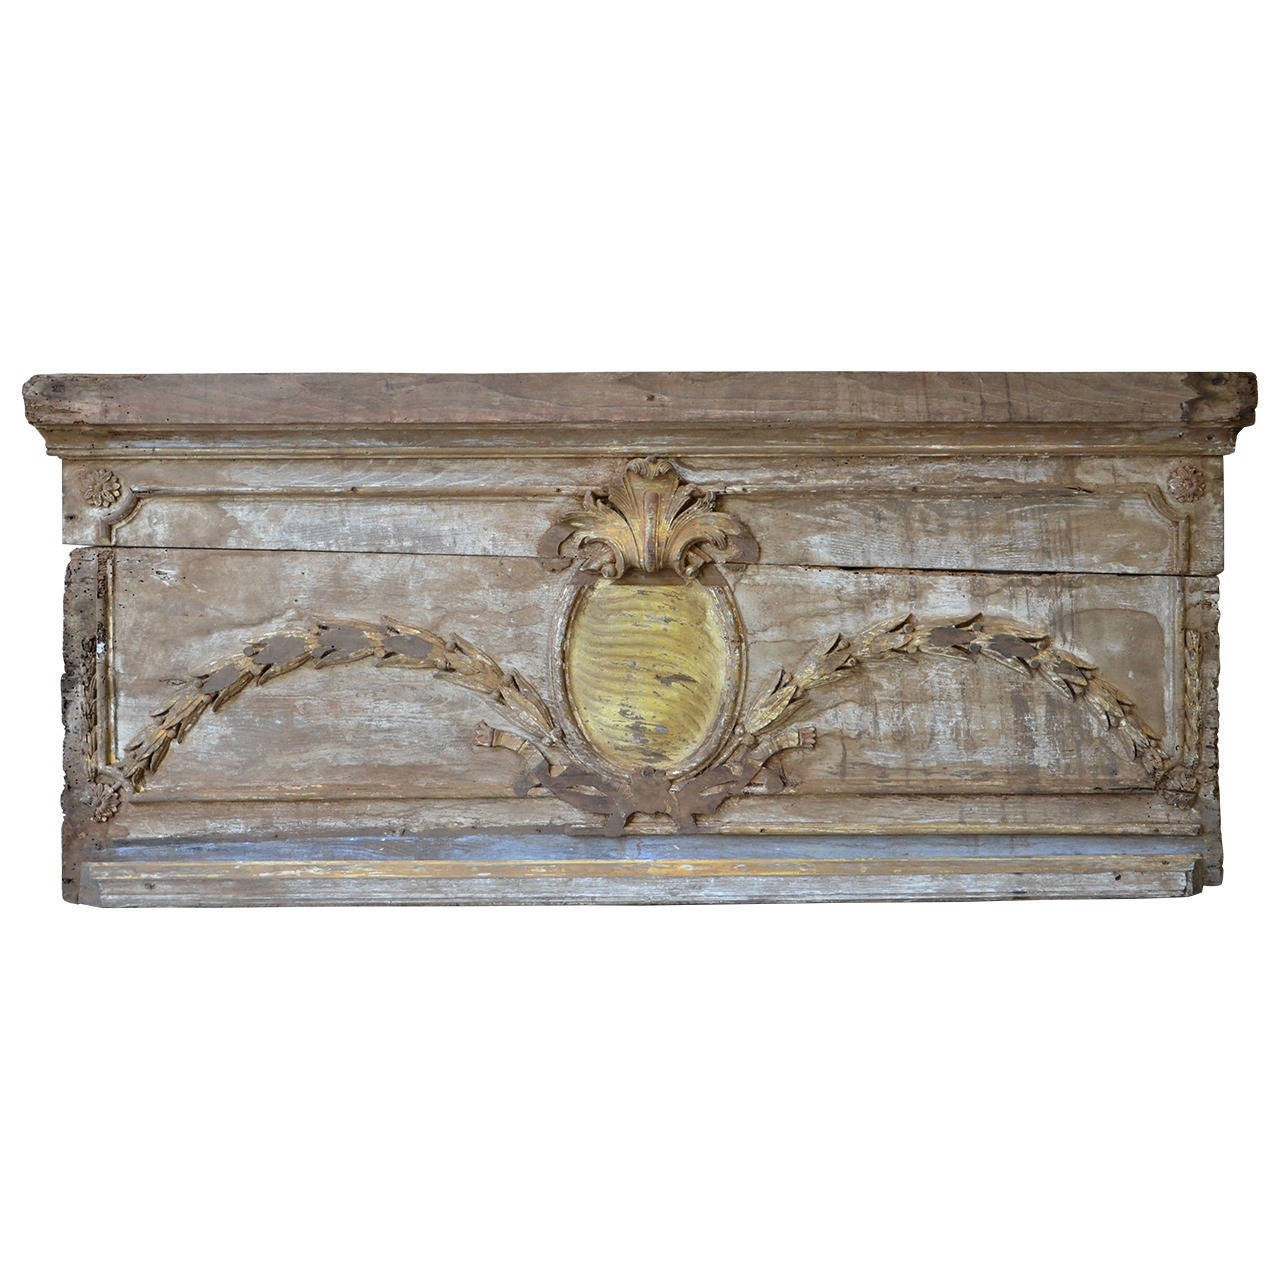 plete Pine Library likewise BOISERIE as well 203814 together with Italian Button Upholstered High End Velvet Bench besides Personalise Interior Design Wall Decoration Ideas. on ornate carved wood ceiling panels